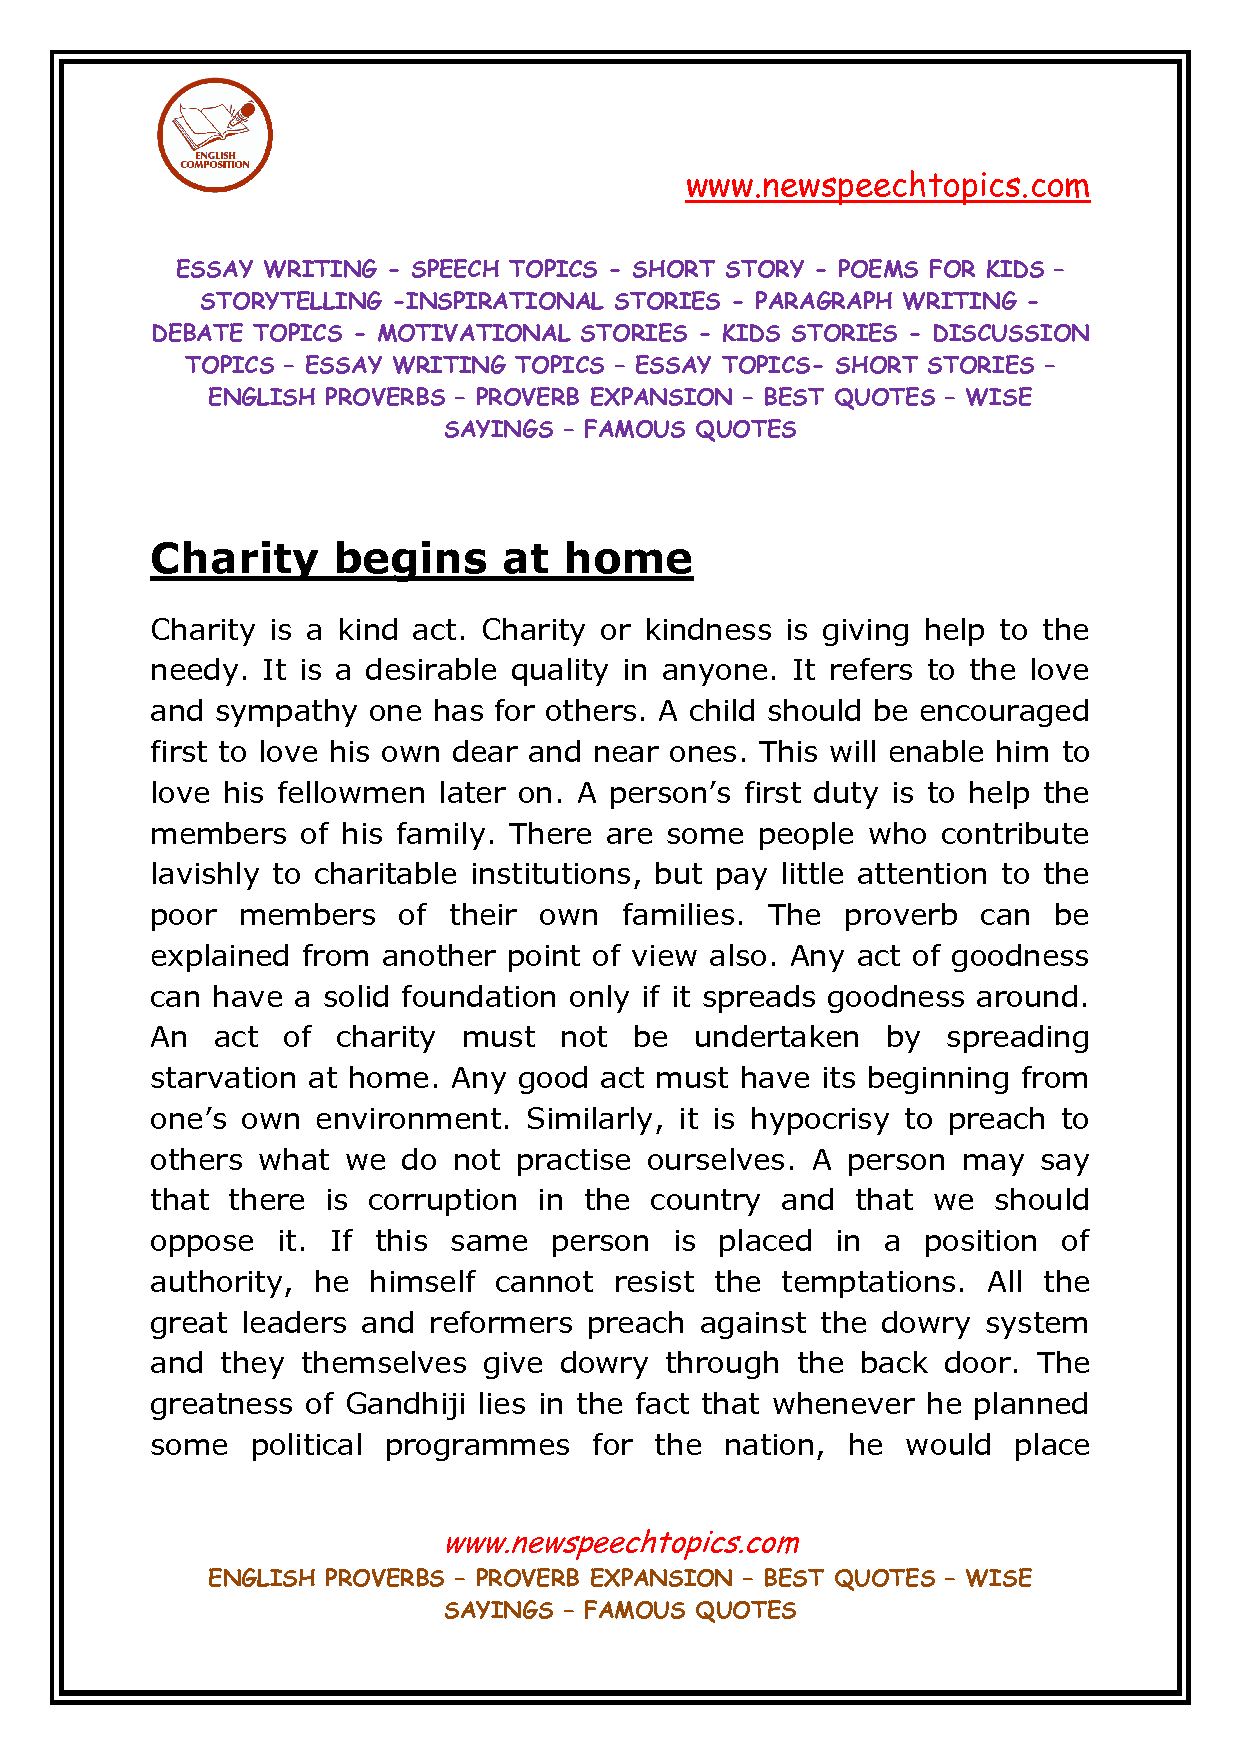 essay on charity essay about charity gxart essay about charity kindness starts at home quotes quotesgramkindness starts at home quotes